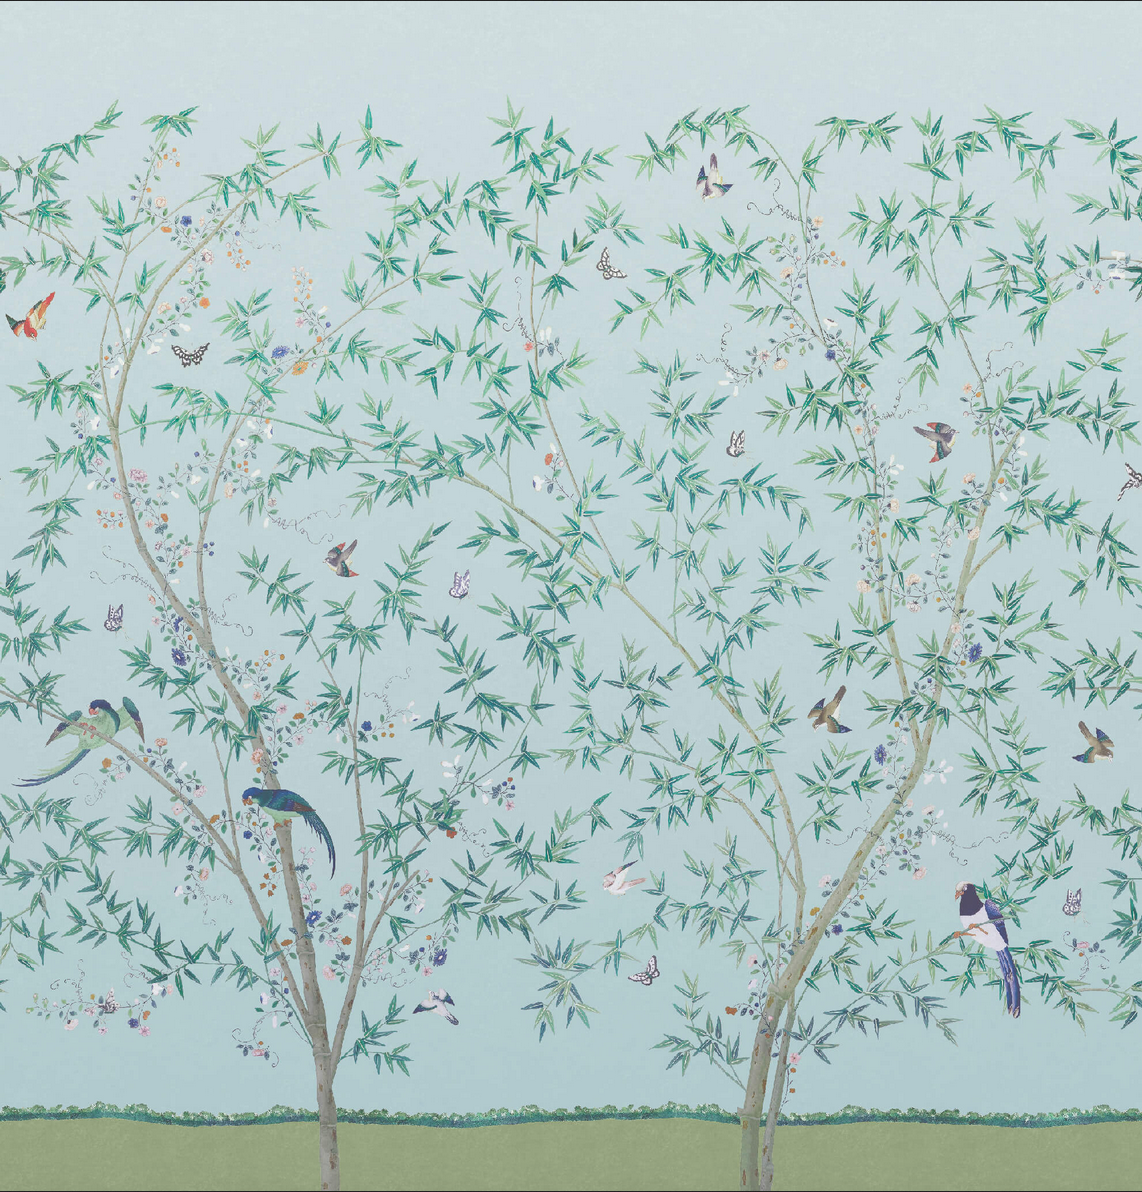 'Belton Scenic' from the Little Greene National Trust papers collection, new for Spring 2020. Based on an original garden party scene paper in the Chinese bedroom at Belton House in Lincolnshire.